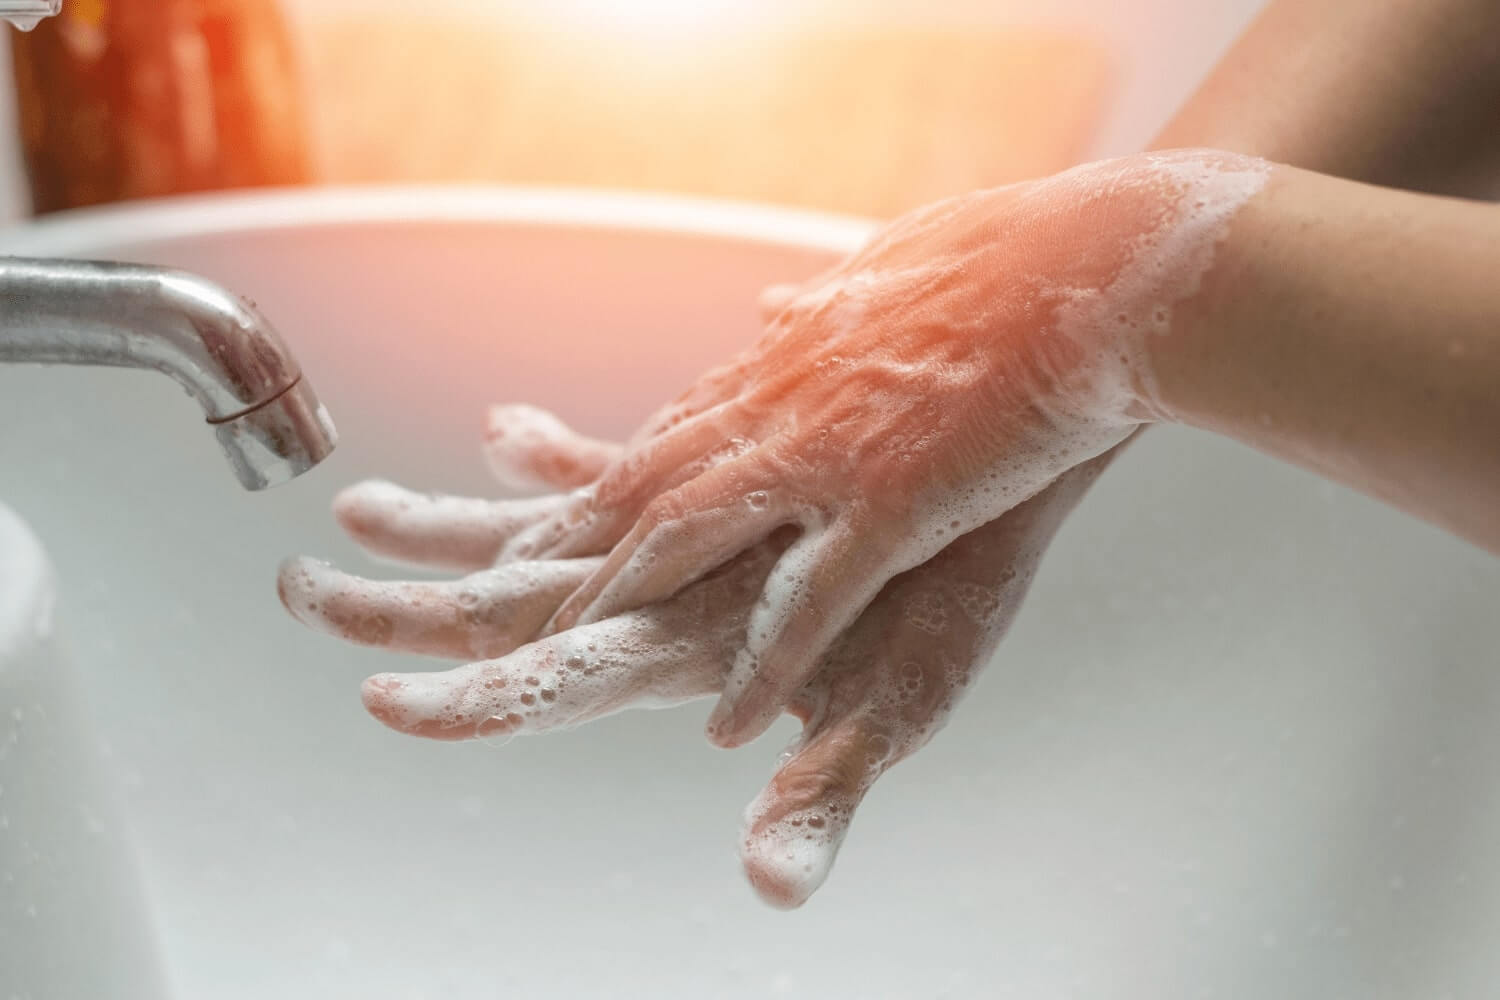 Experts suggest hand washing and distancing could be regularly used to slow spread of lung infections